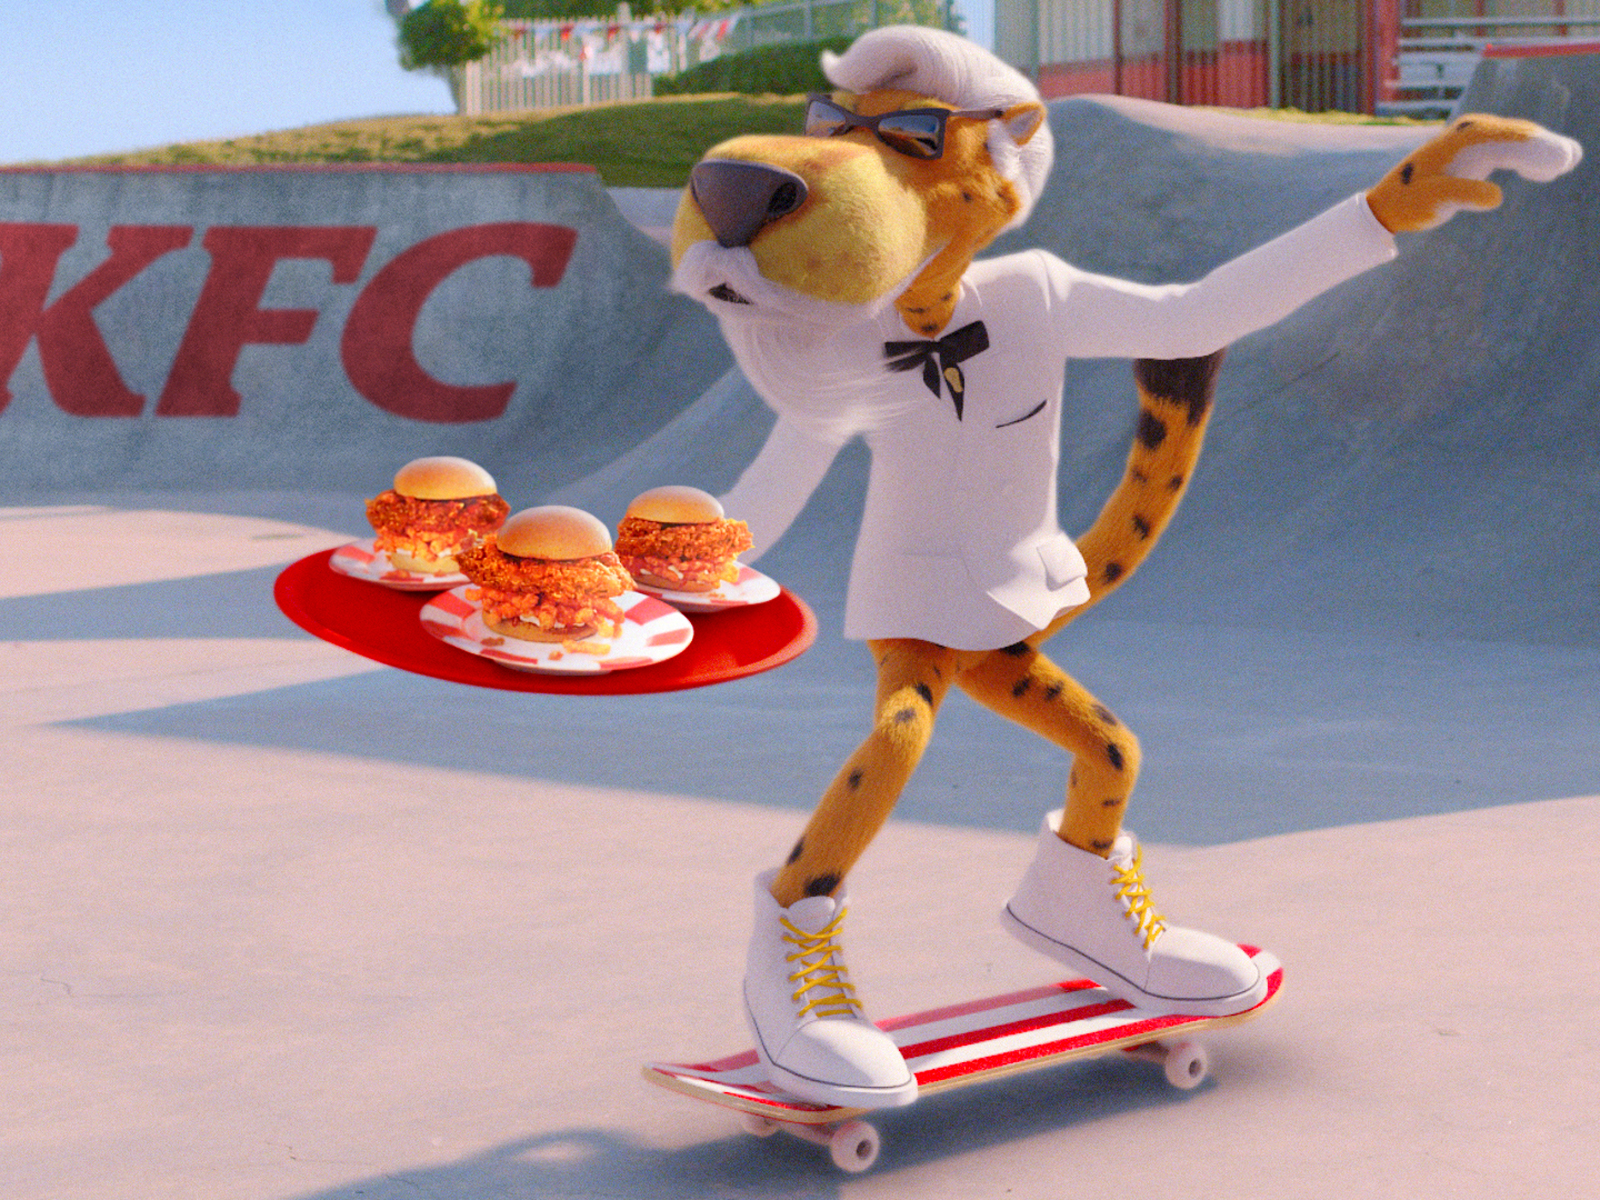 kfc-chester-cheetah-FT-BLOG0619.jpg